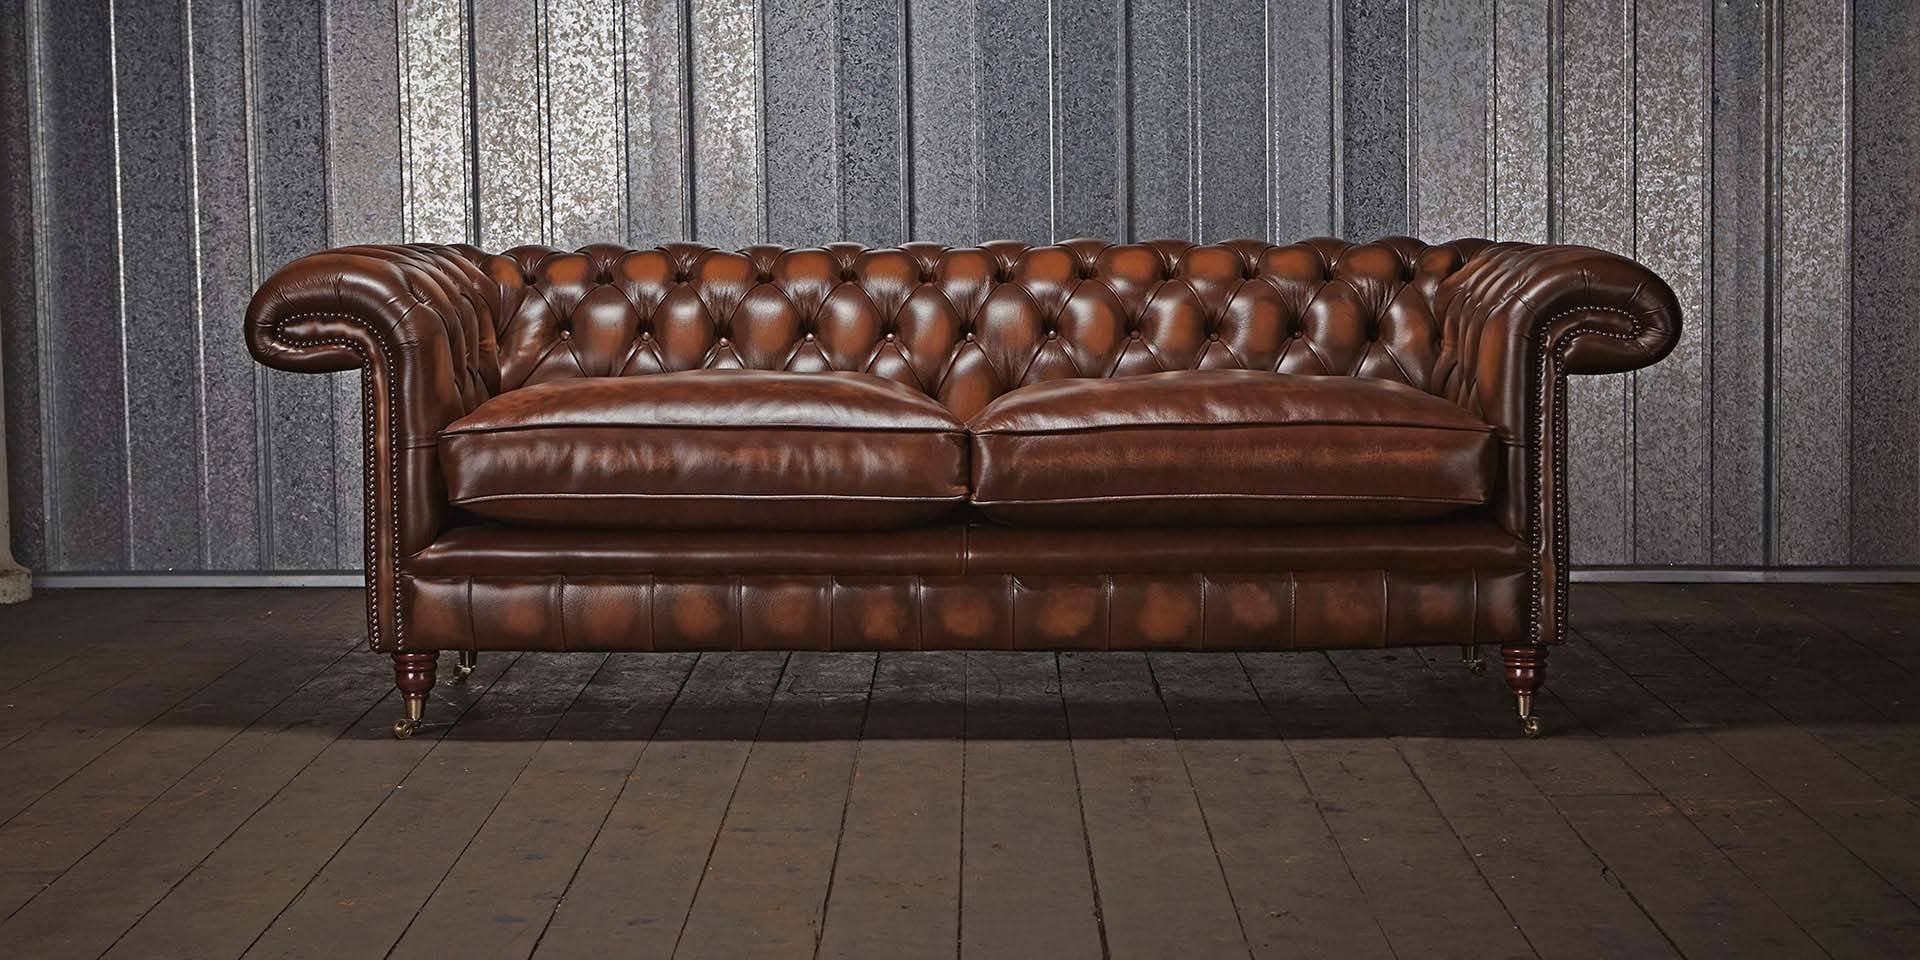 Chartwell Chesterfield Sofa | Chesterfields Of England In Chesterfield Sofas (View 7 of 30)